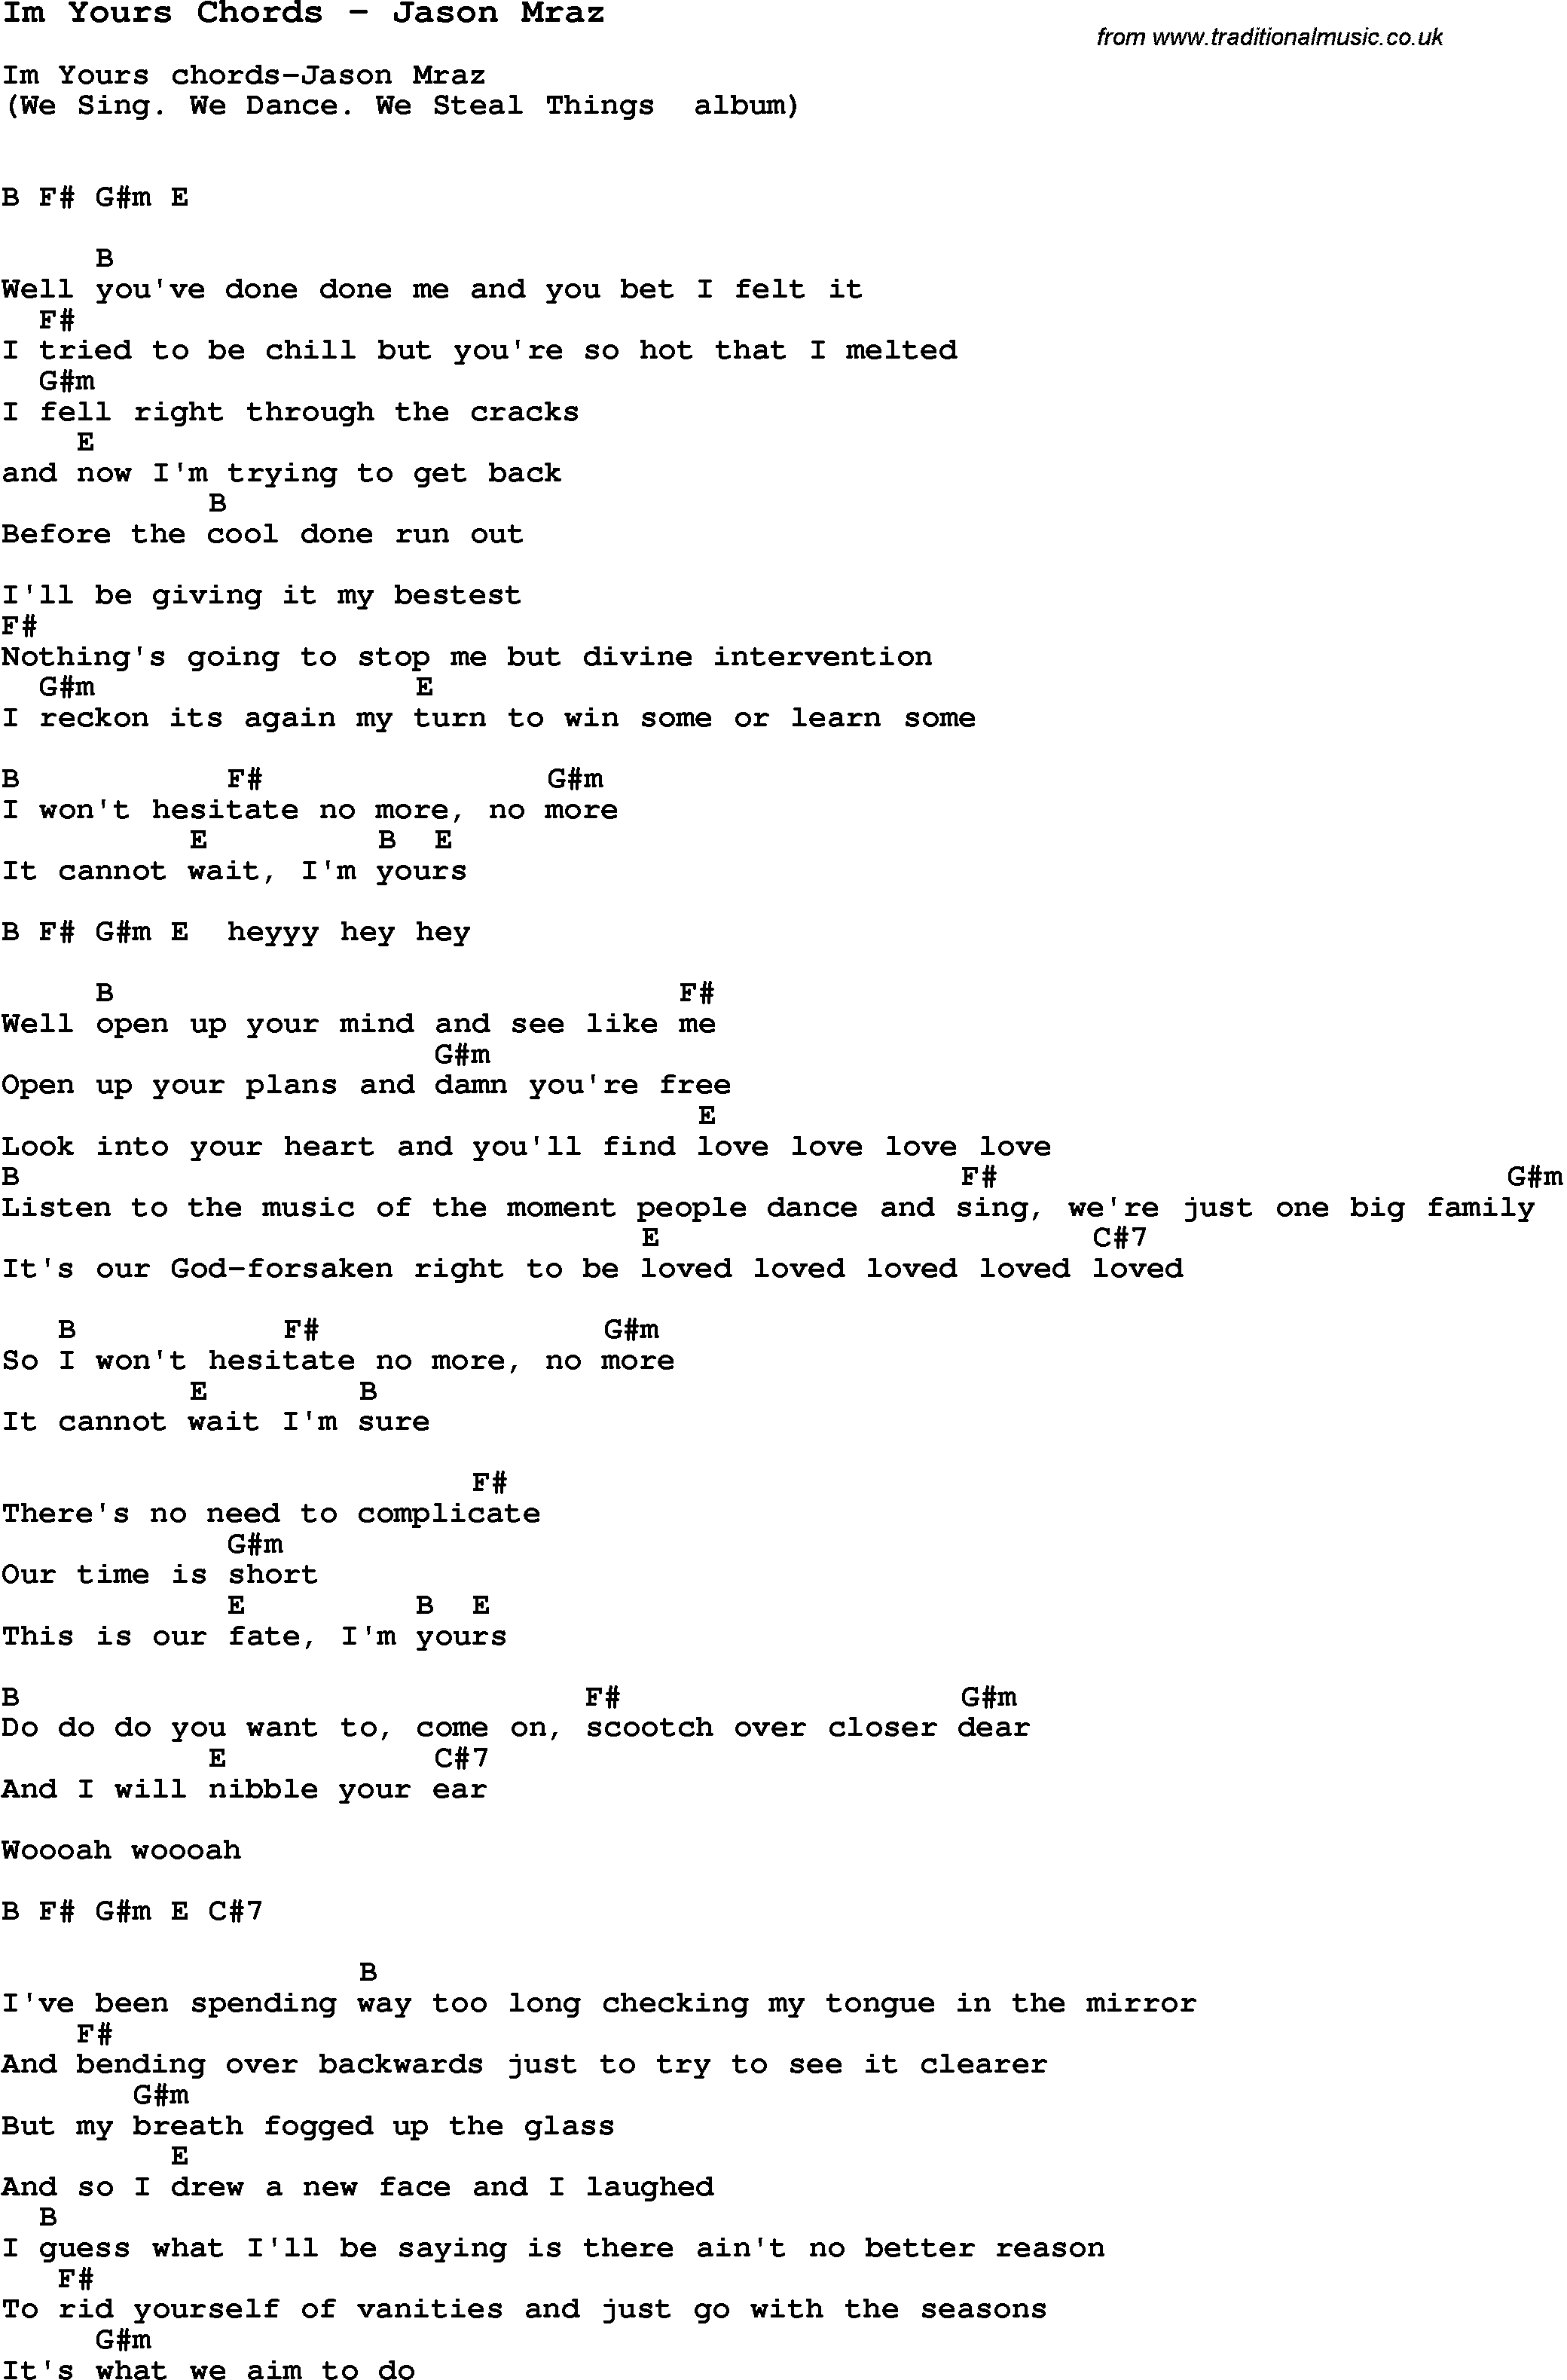 Song Im Yours Chords by Jason Mraz, song lyric for vocal performance plus accompaniment chords ...